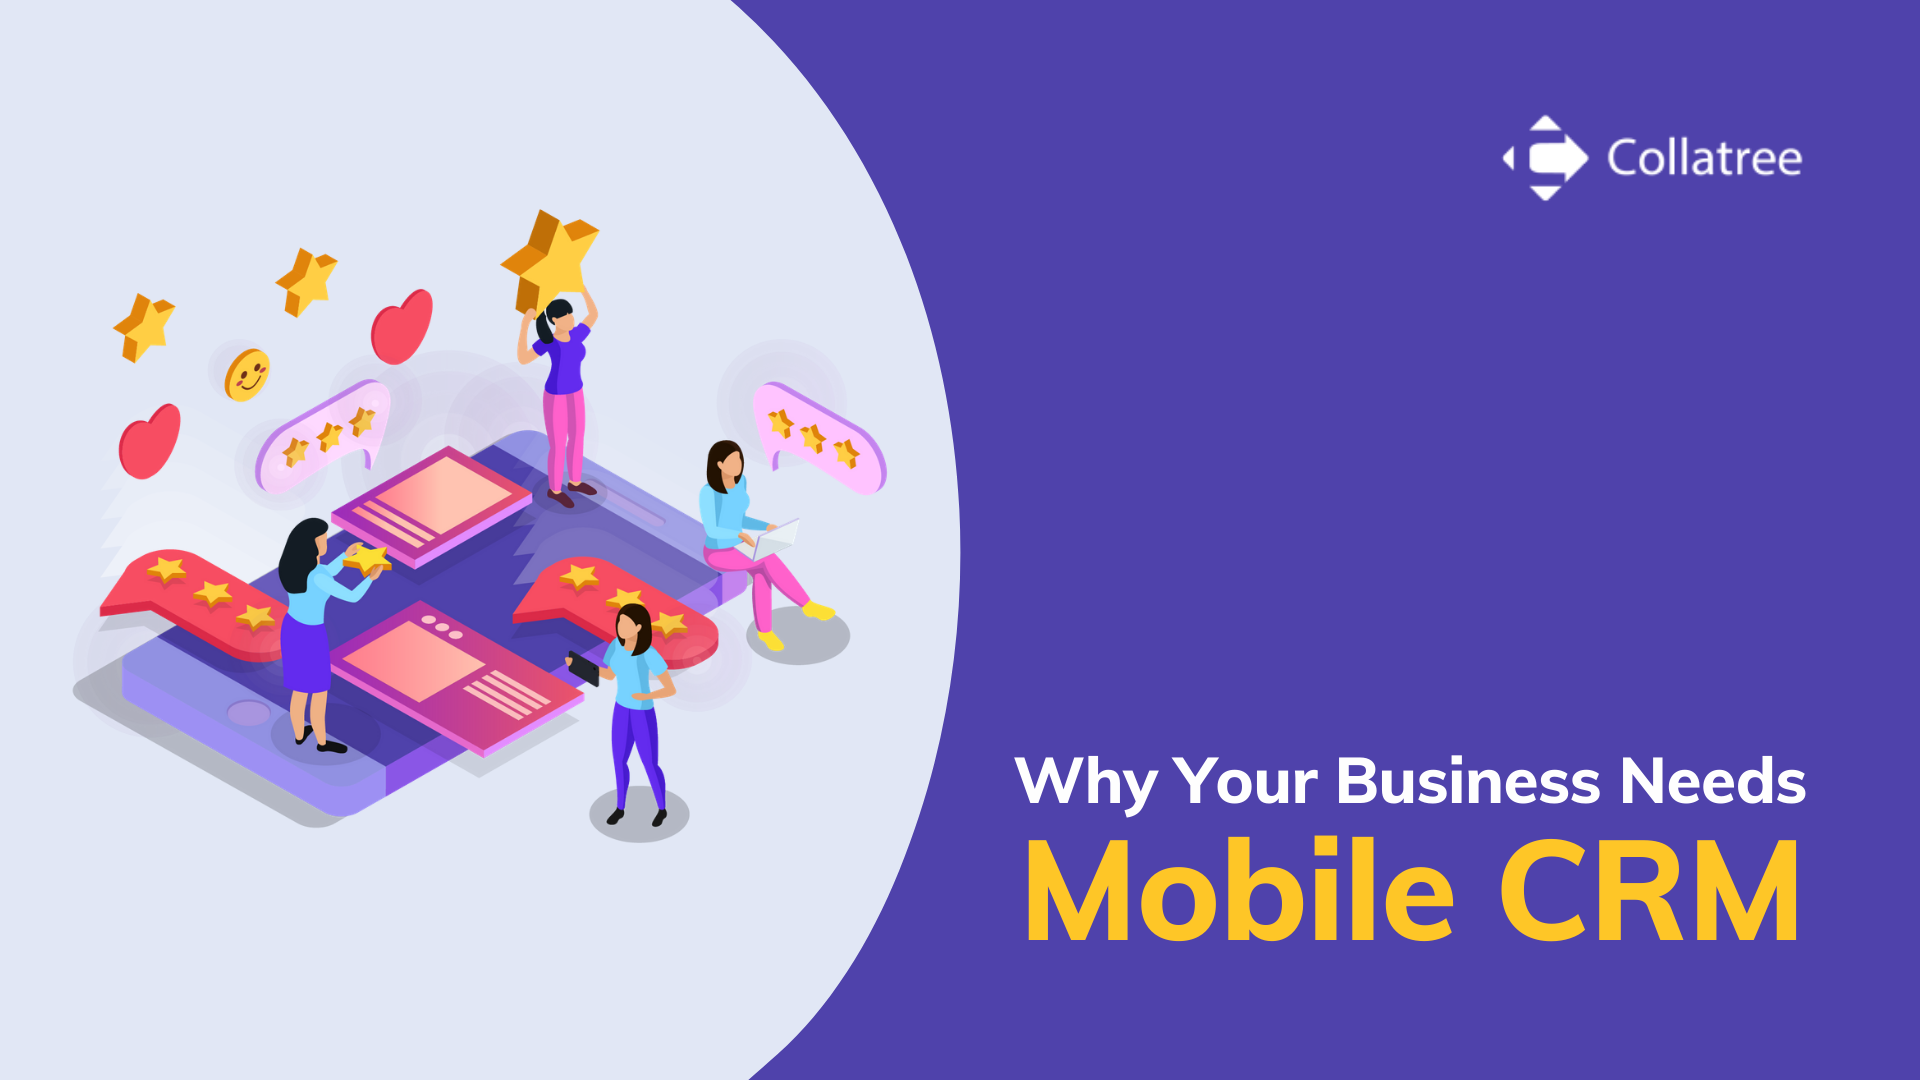 Why Your Business Needs a Mobile CRM Strategy